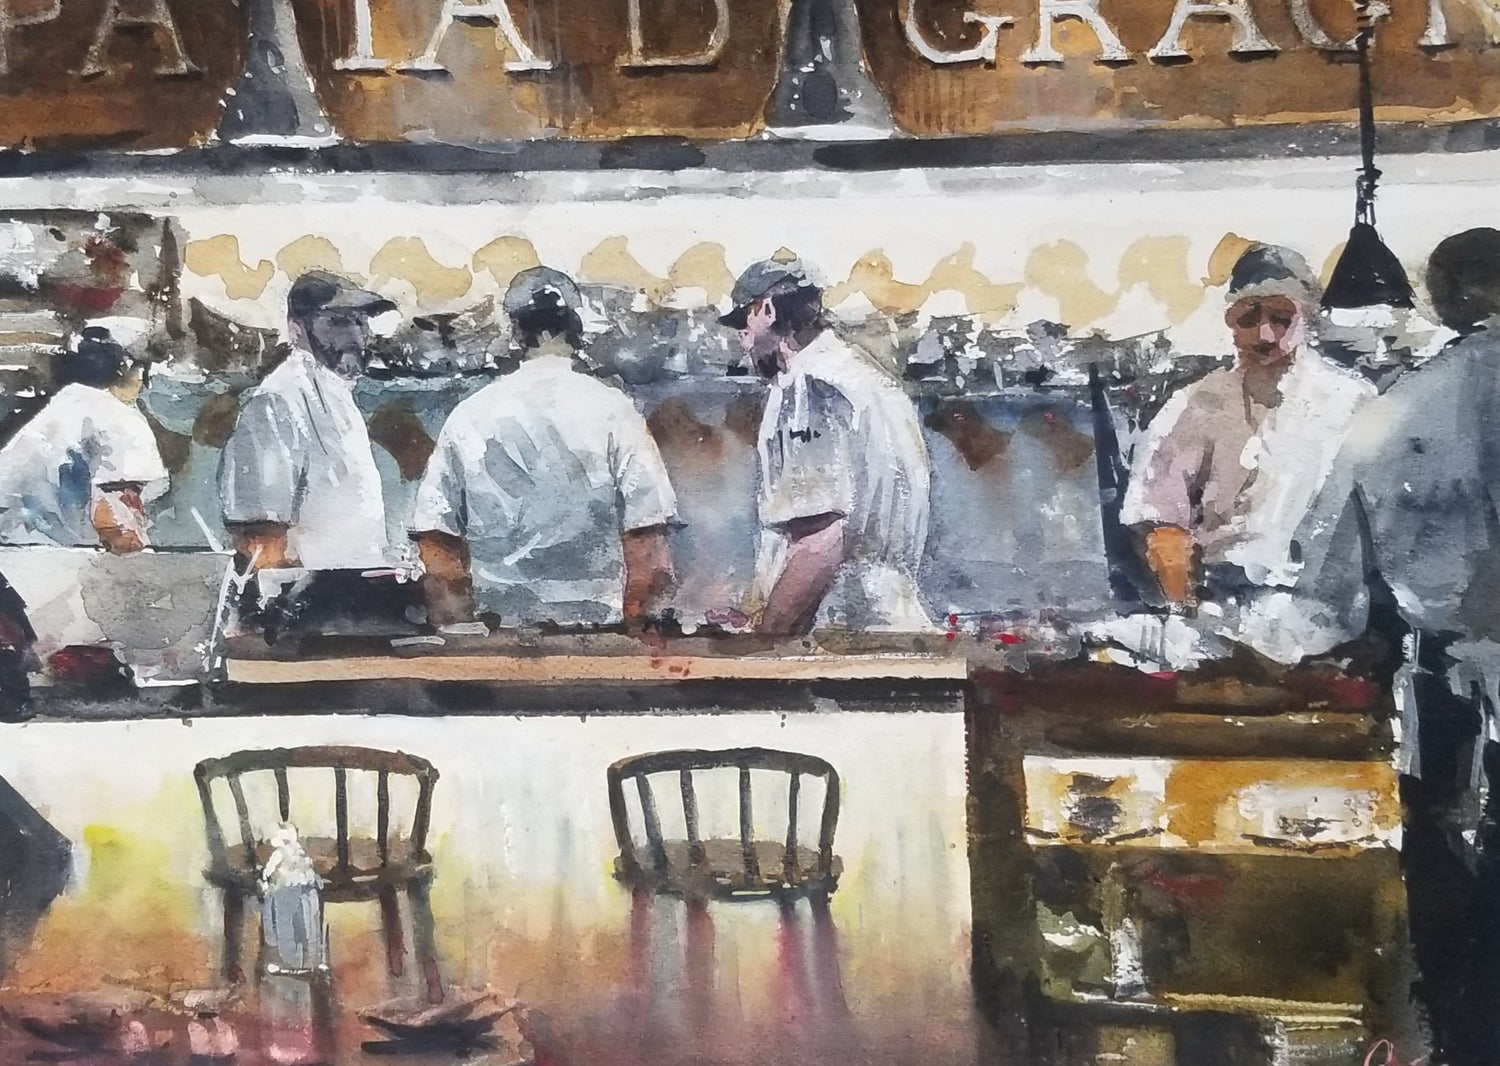 Image of Eataly prints